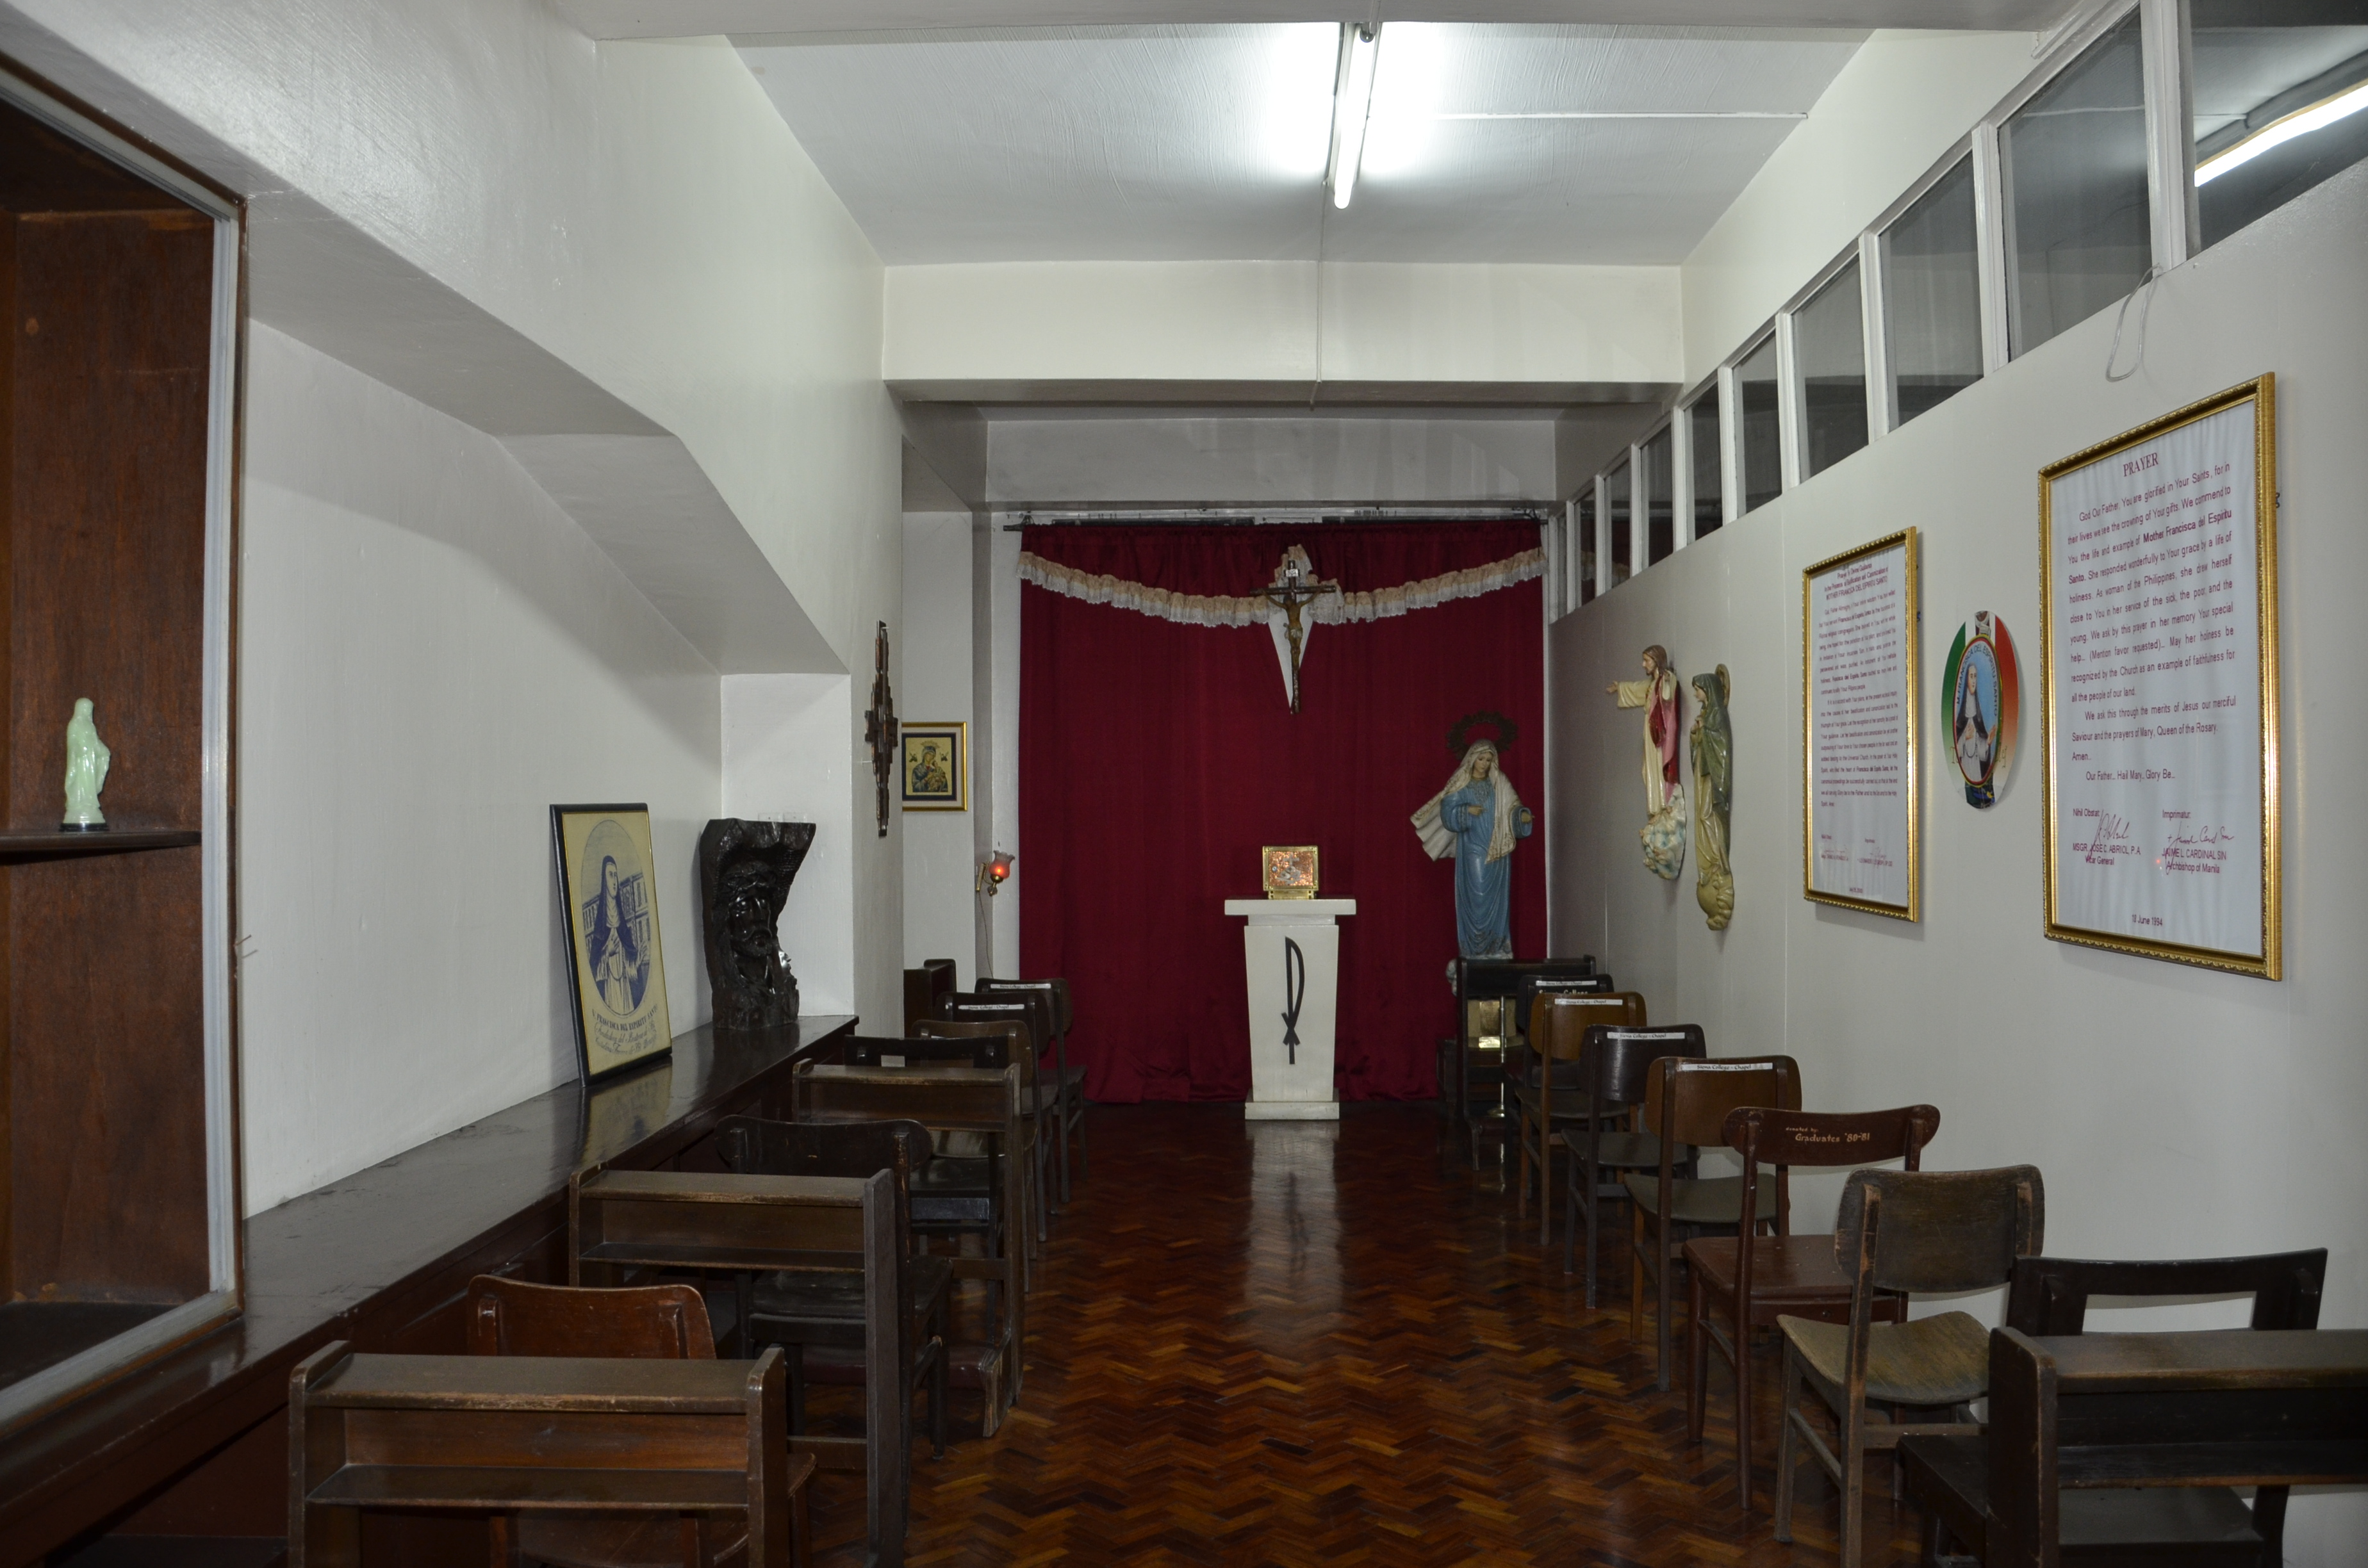 COLLEGE PRAYER ROOM - COLLEGE FACILTY